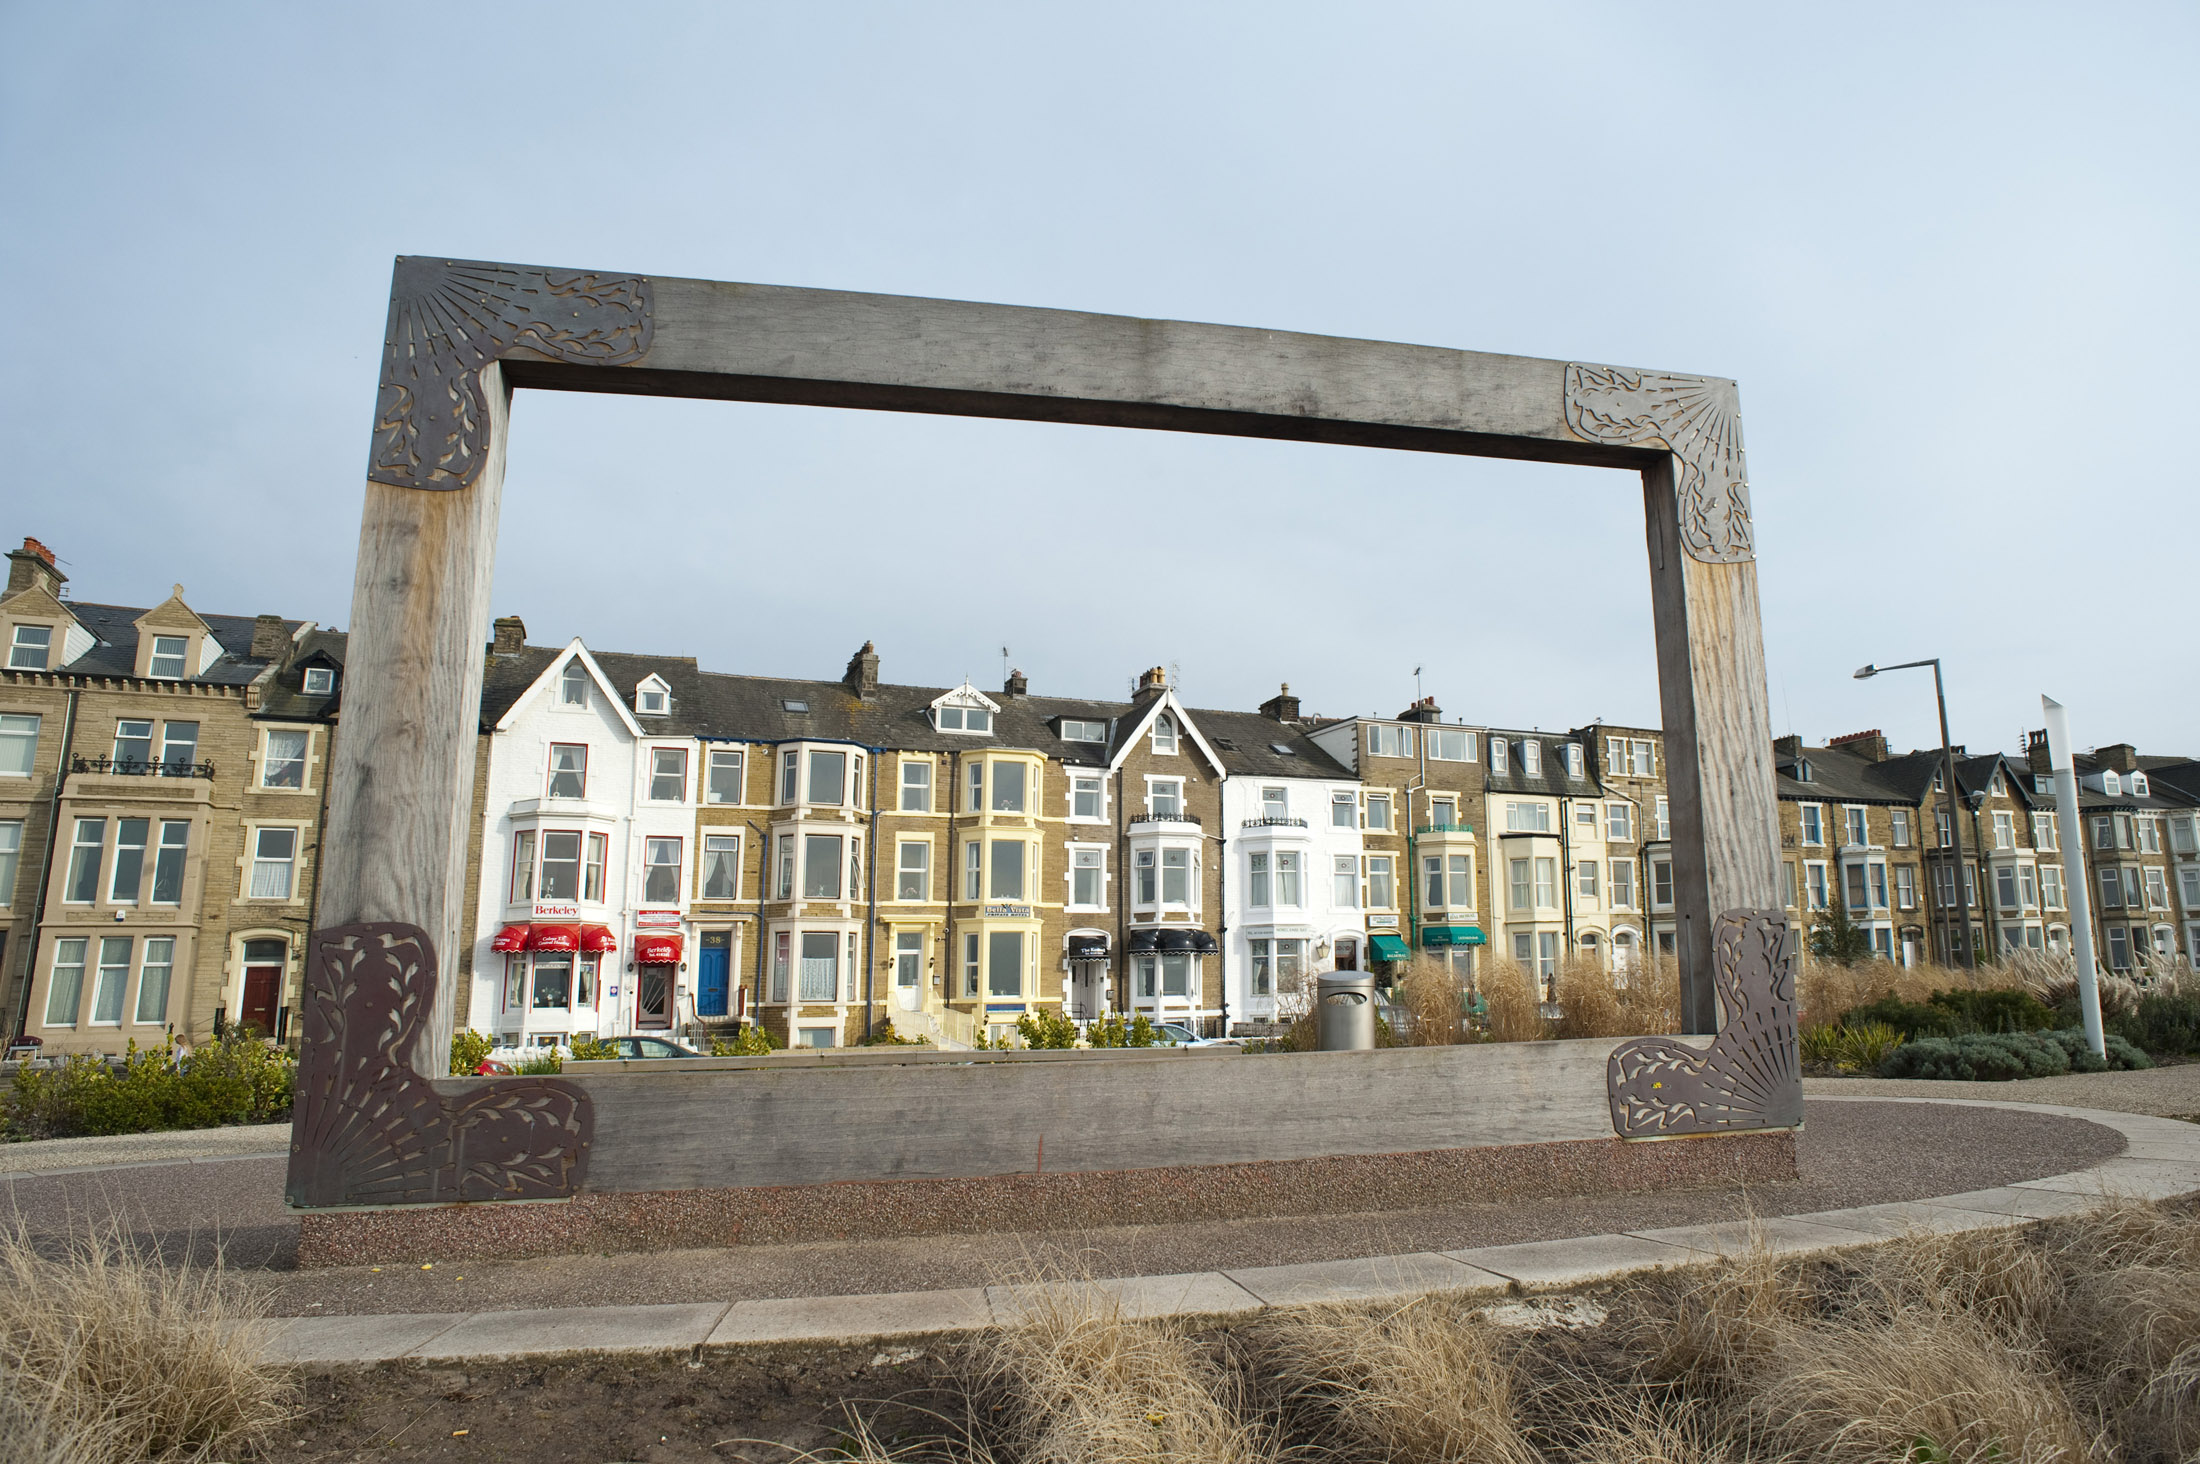 a large wooden picture frame at the west end gardens in morecambe, when viewed from the opposite side allows visitors to frame a bleak vista of morecambe sands